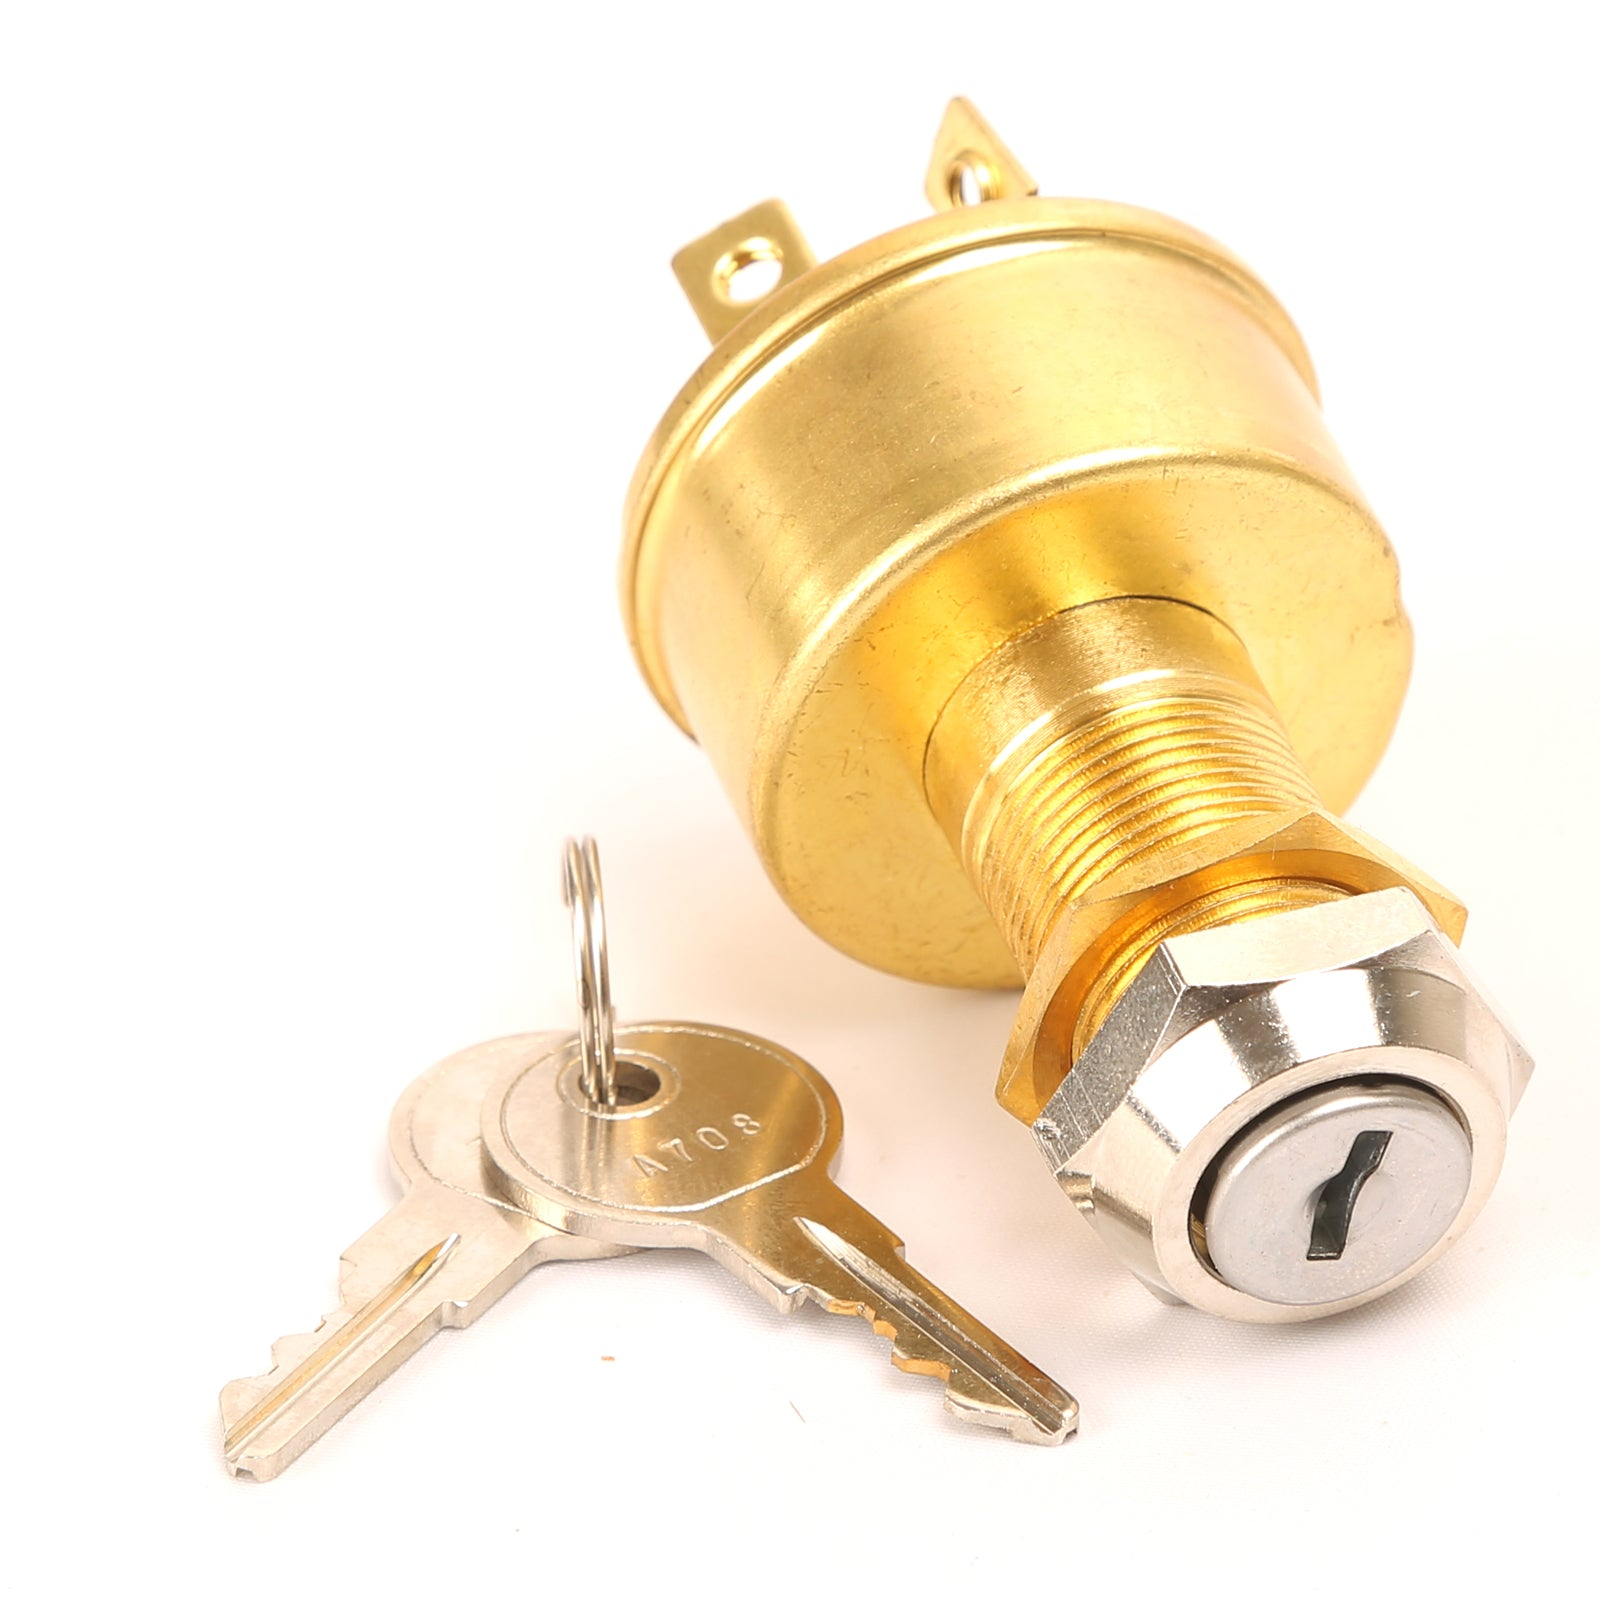 IGNITION SWITCH WITH KEY MARINE BOAT